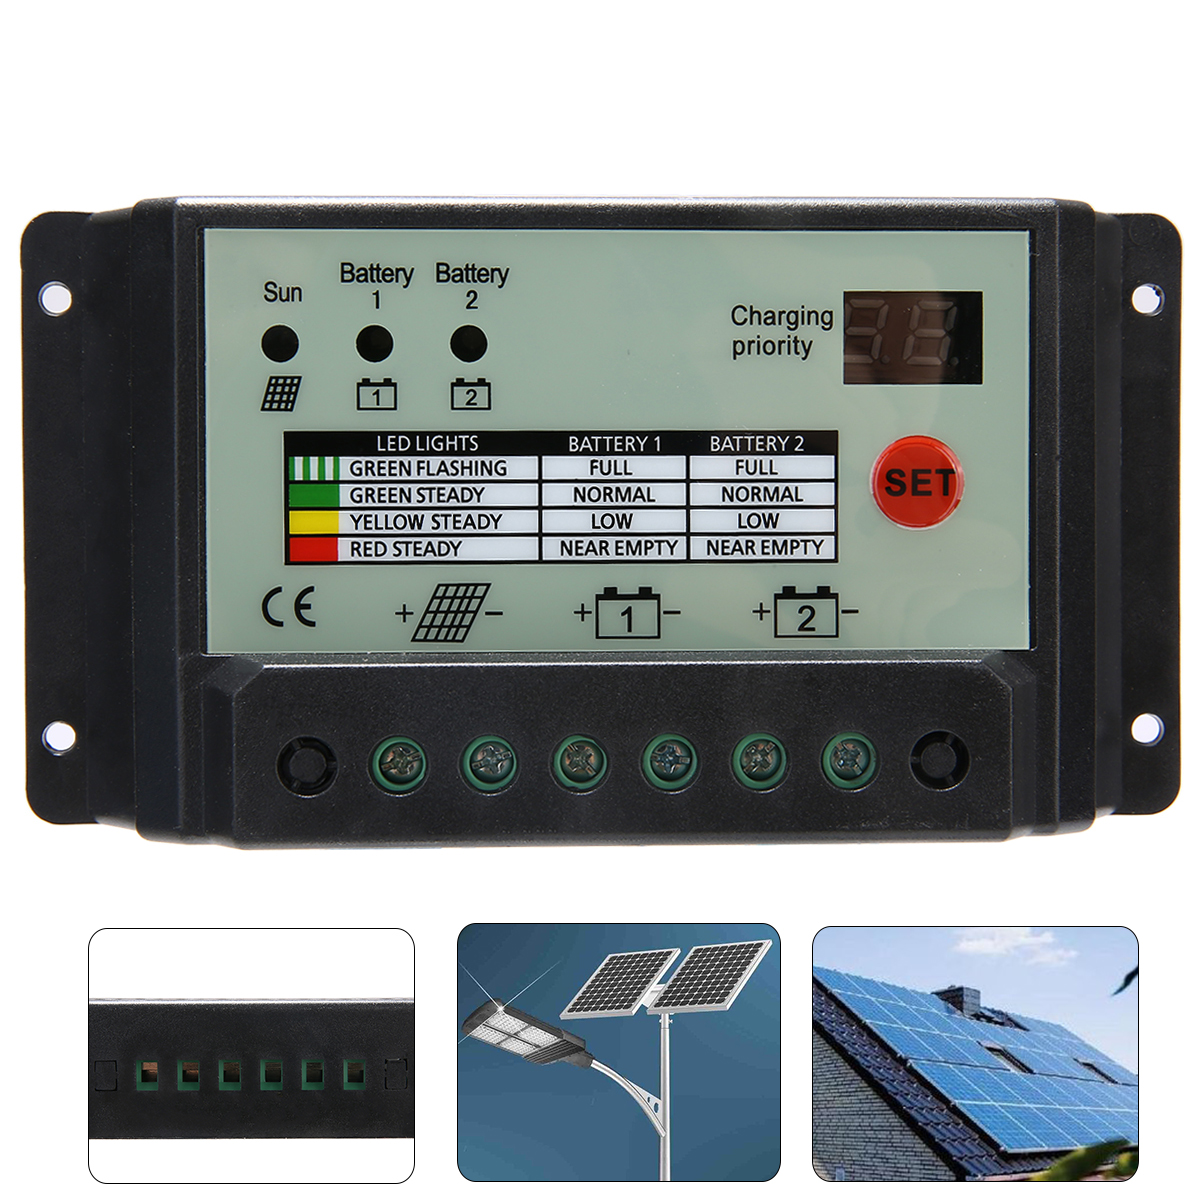 20A Dual Battery Solar Charge Controller Regulator For 12V or 24V Batteries Solar Controllers